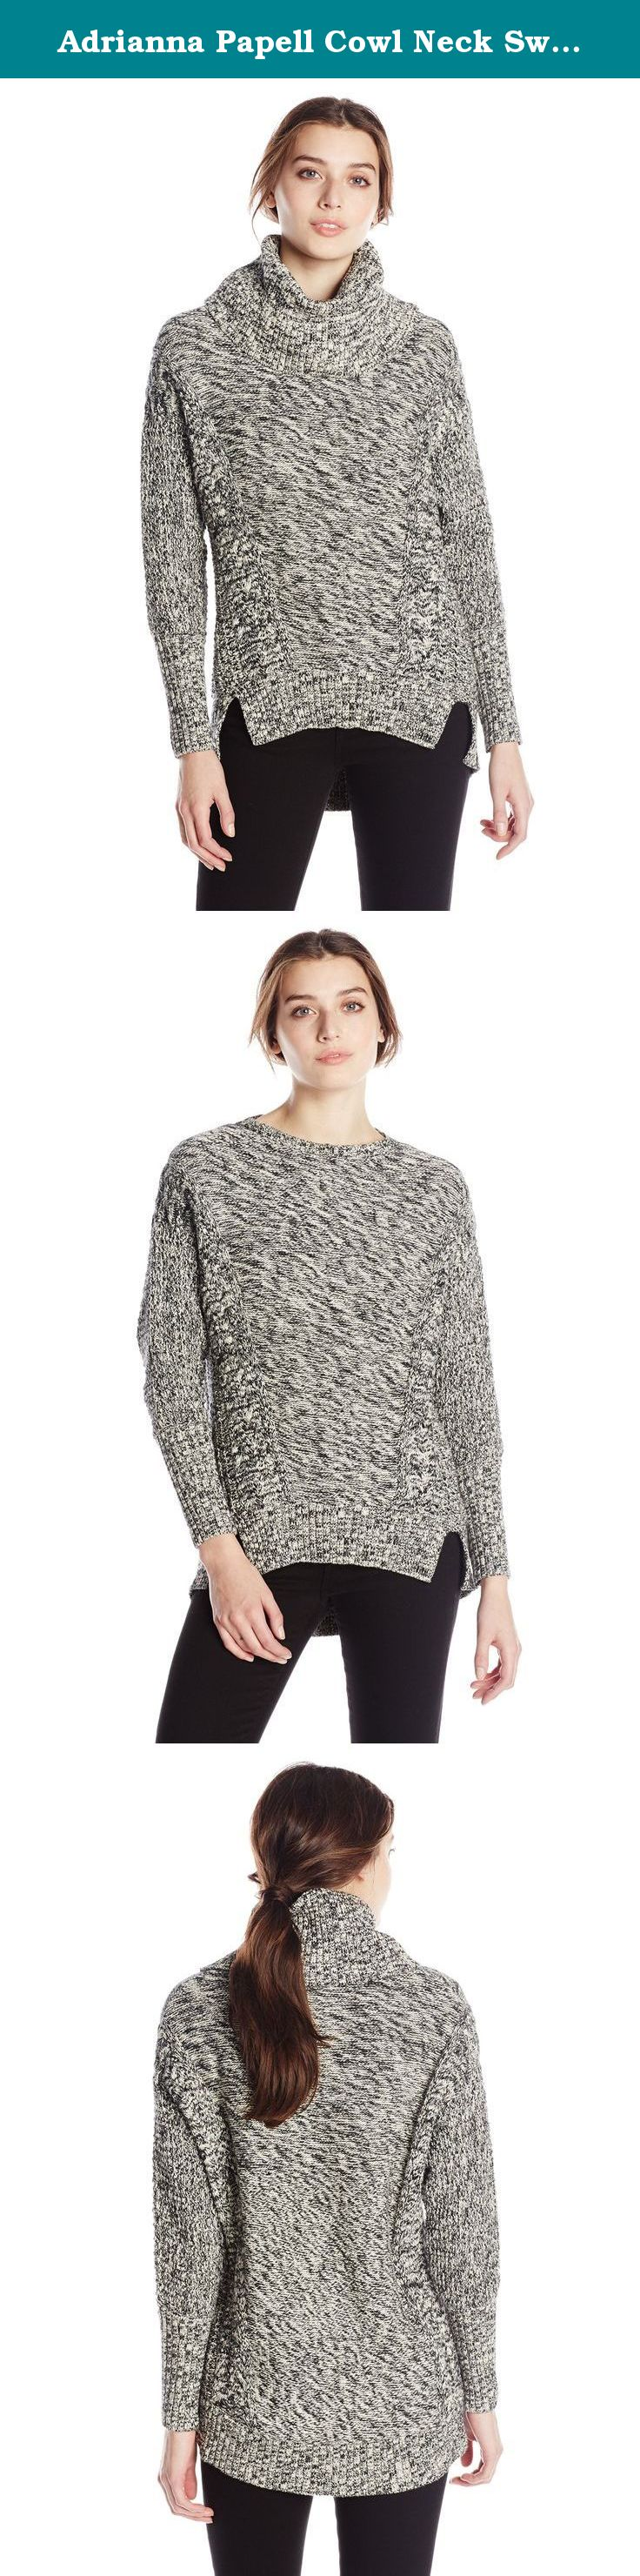 Adrianna Papell Cowl Neck Sweater. Cowl neck sweater, jaspee ...